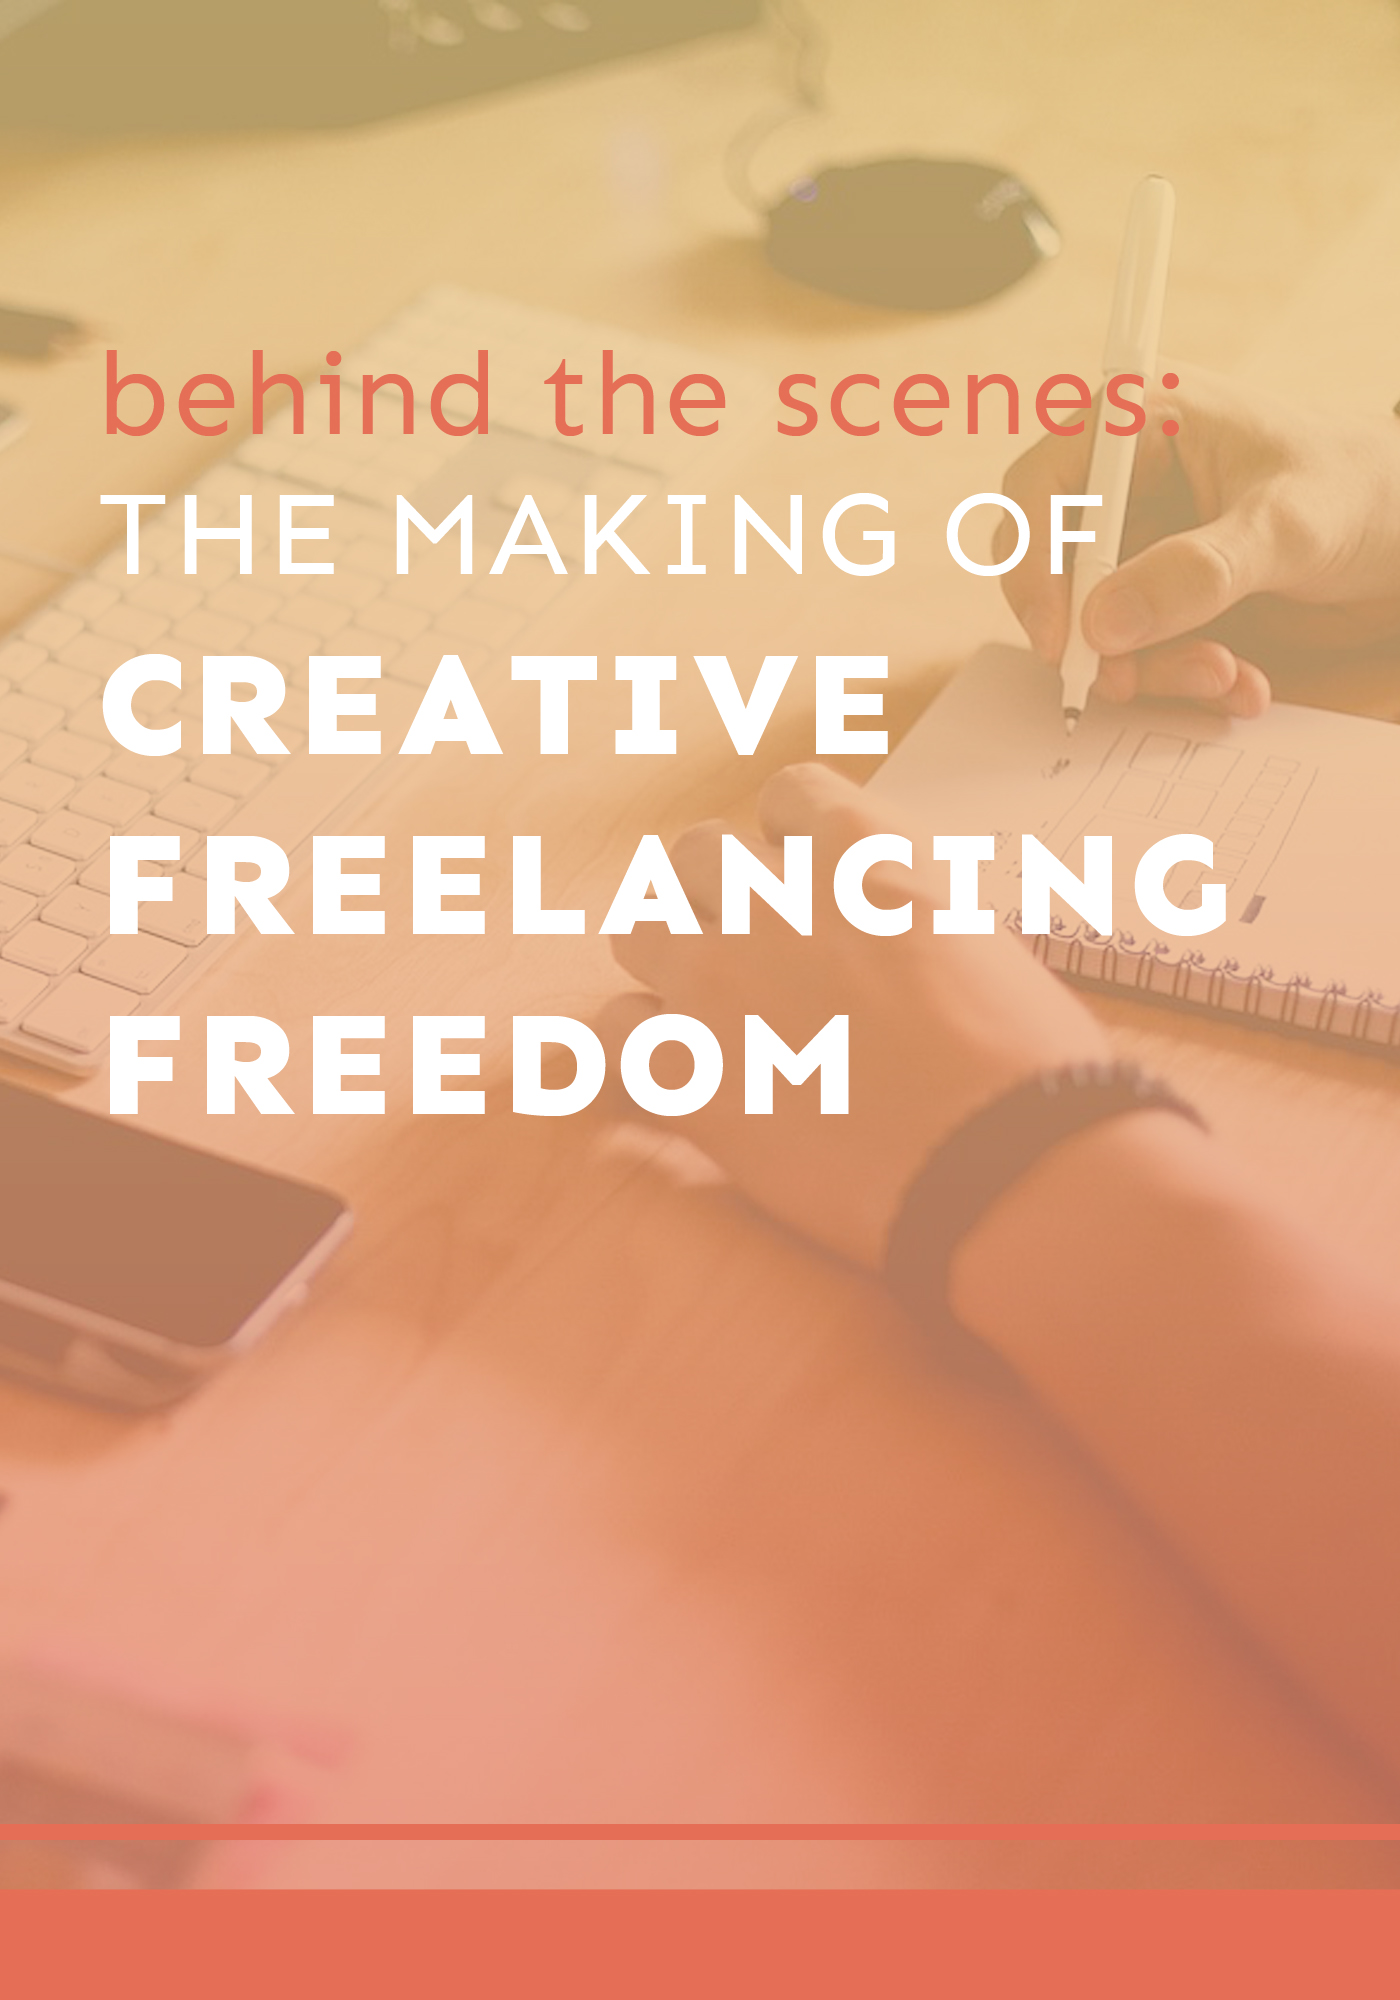 Go behind the scenes and learn how I came up with and created the concept behind Creative Freelancing Freedom